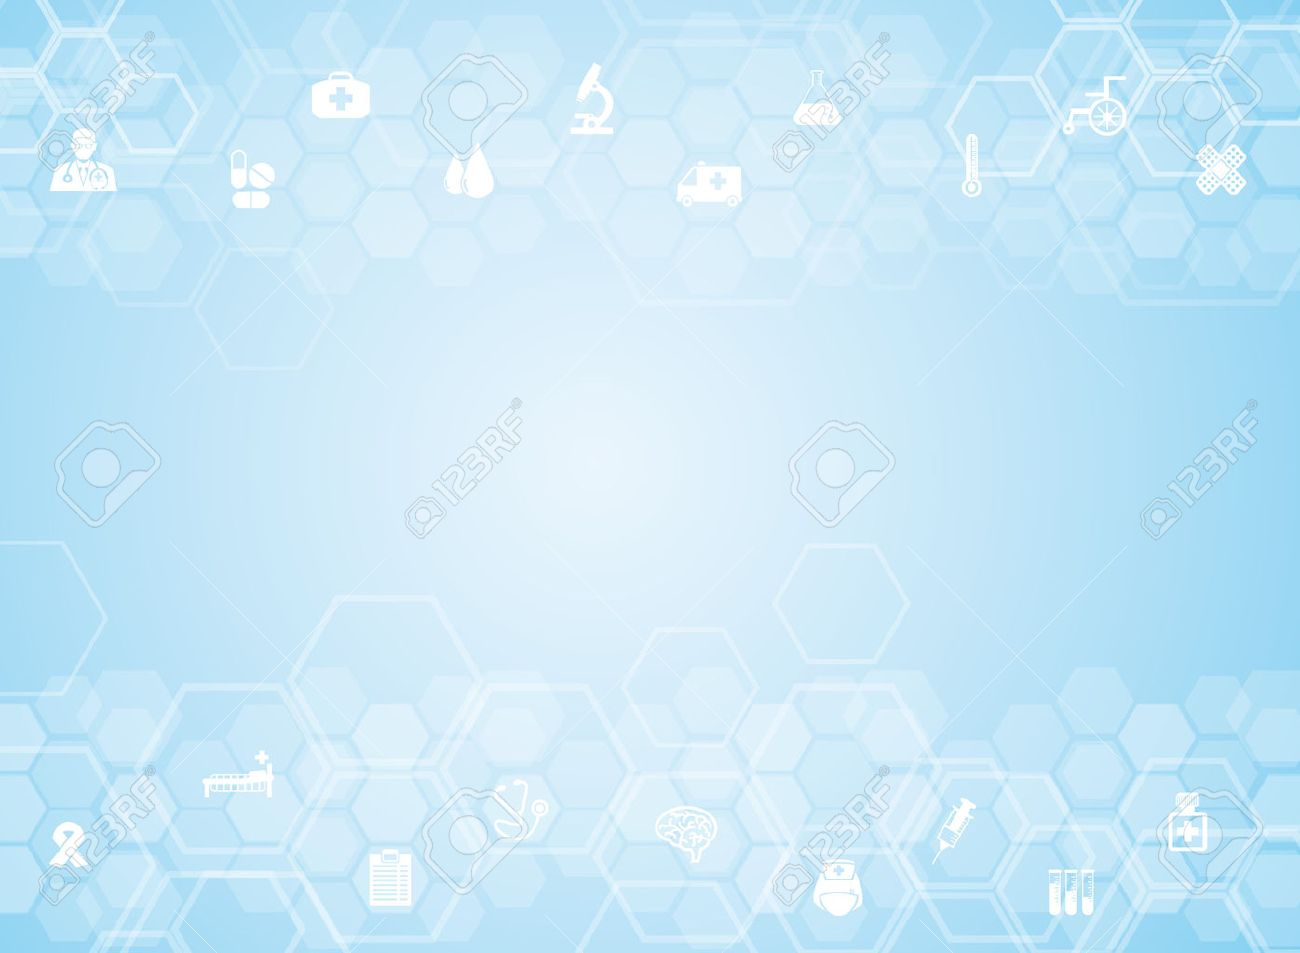 Medical background and icons to treat patients. Stock Vector - 40534275